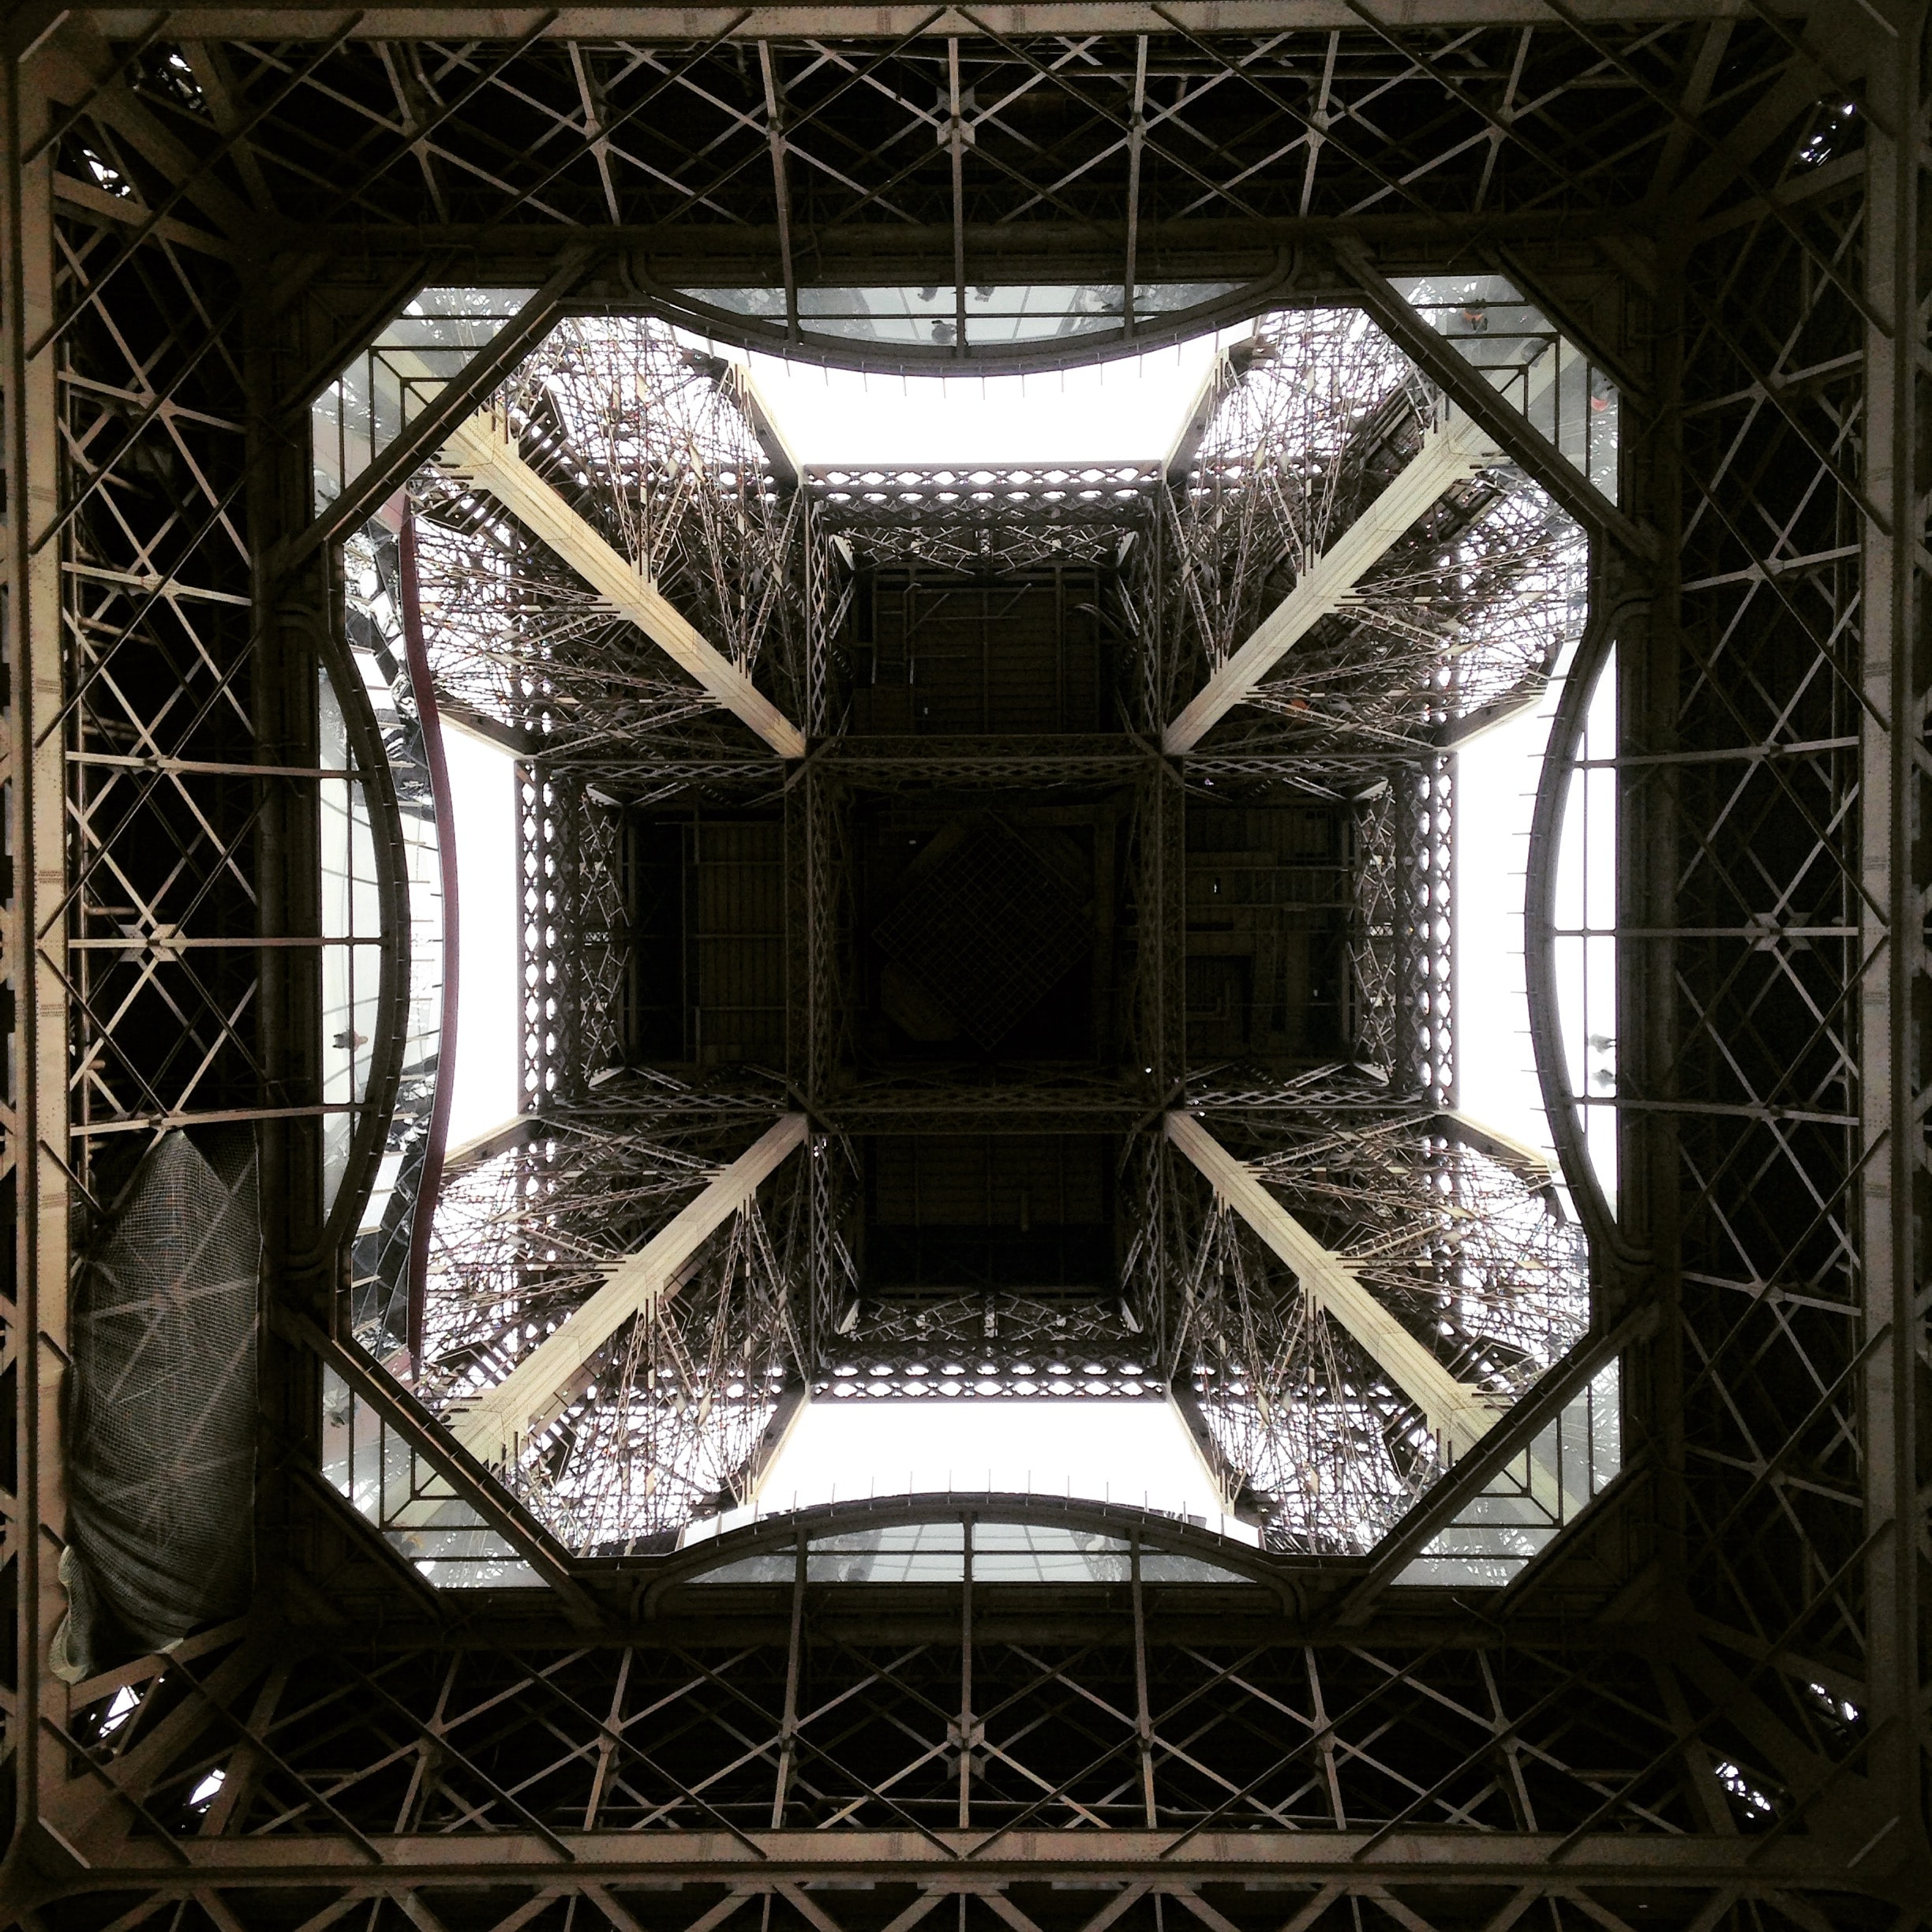 Street view looking inside the architecture of the Eiffel Tower in Paris, France.